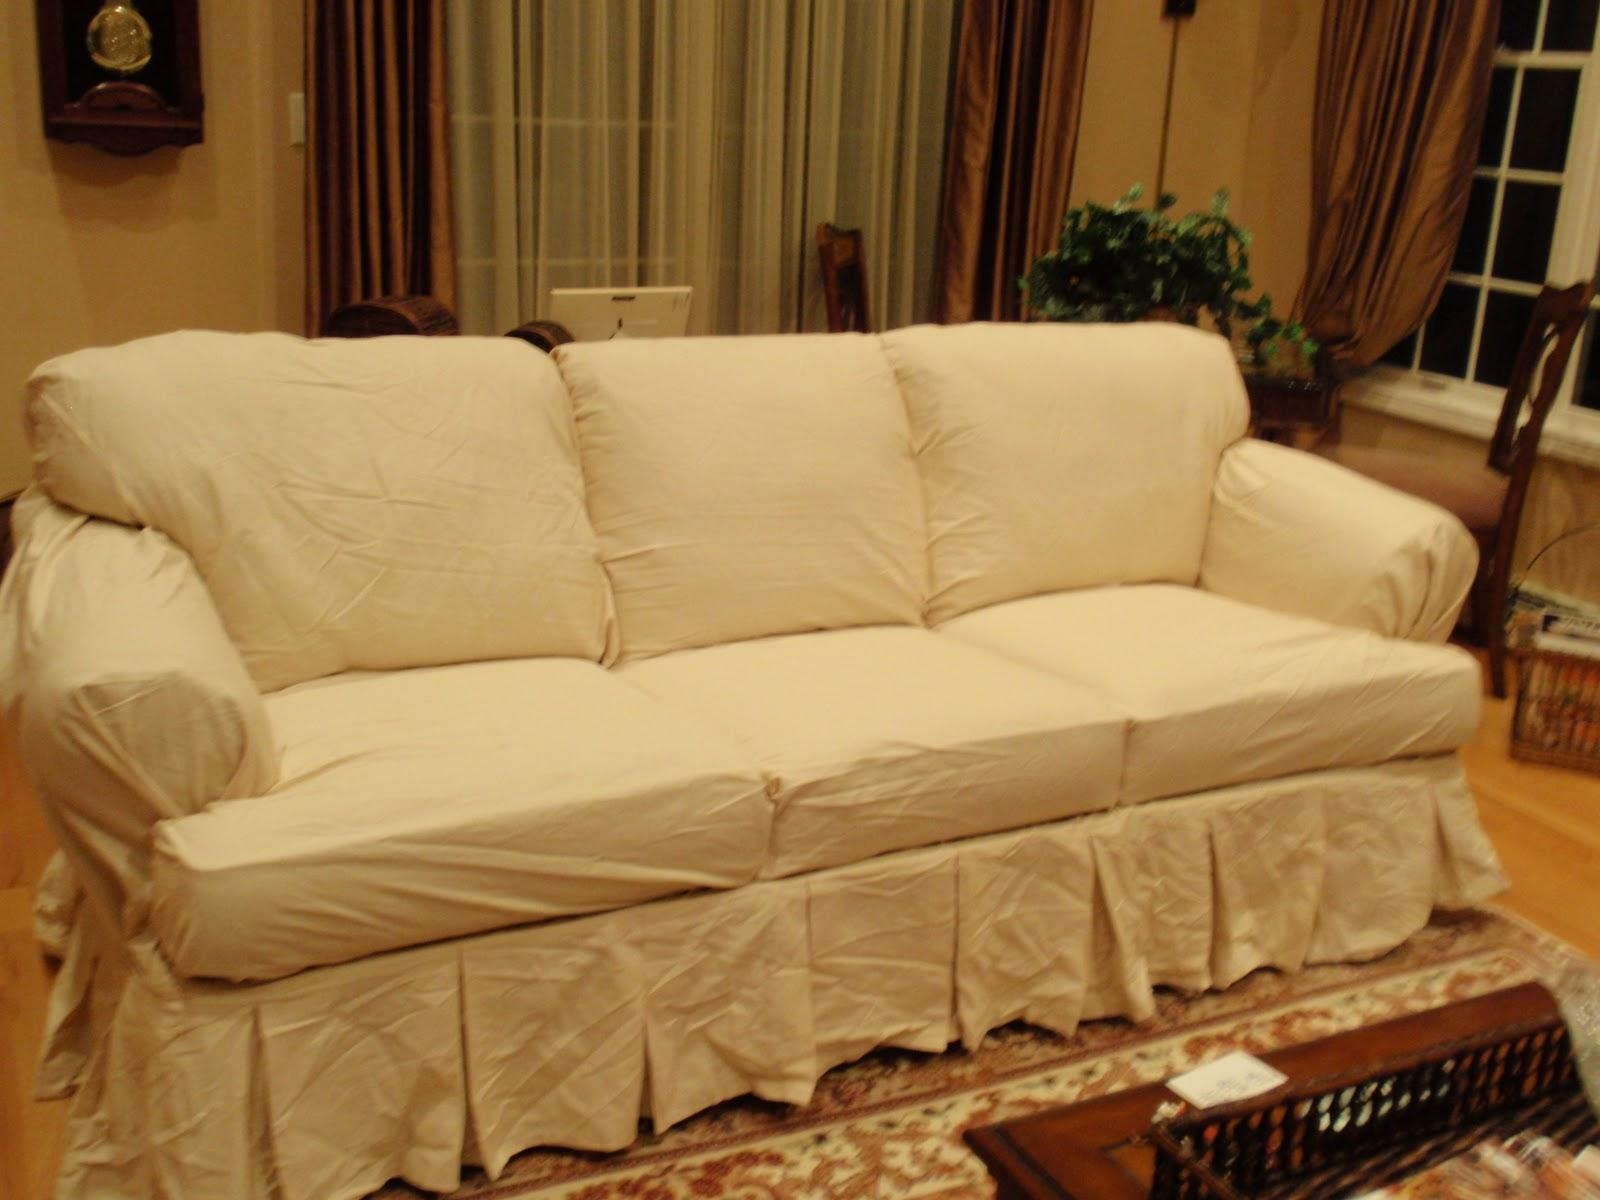 Furniture: Update Your Living Room With Best Sofa Slipcover Design With Regard To Slipcovers For Sleeper Sofas (Image 6 of 20)